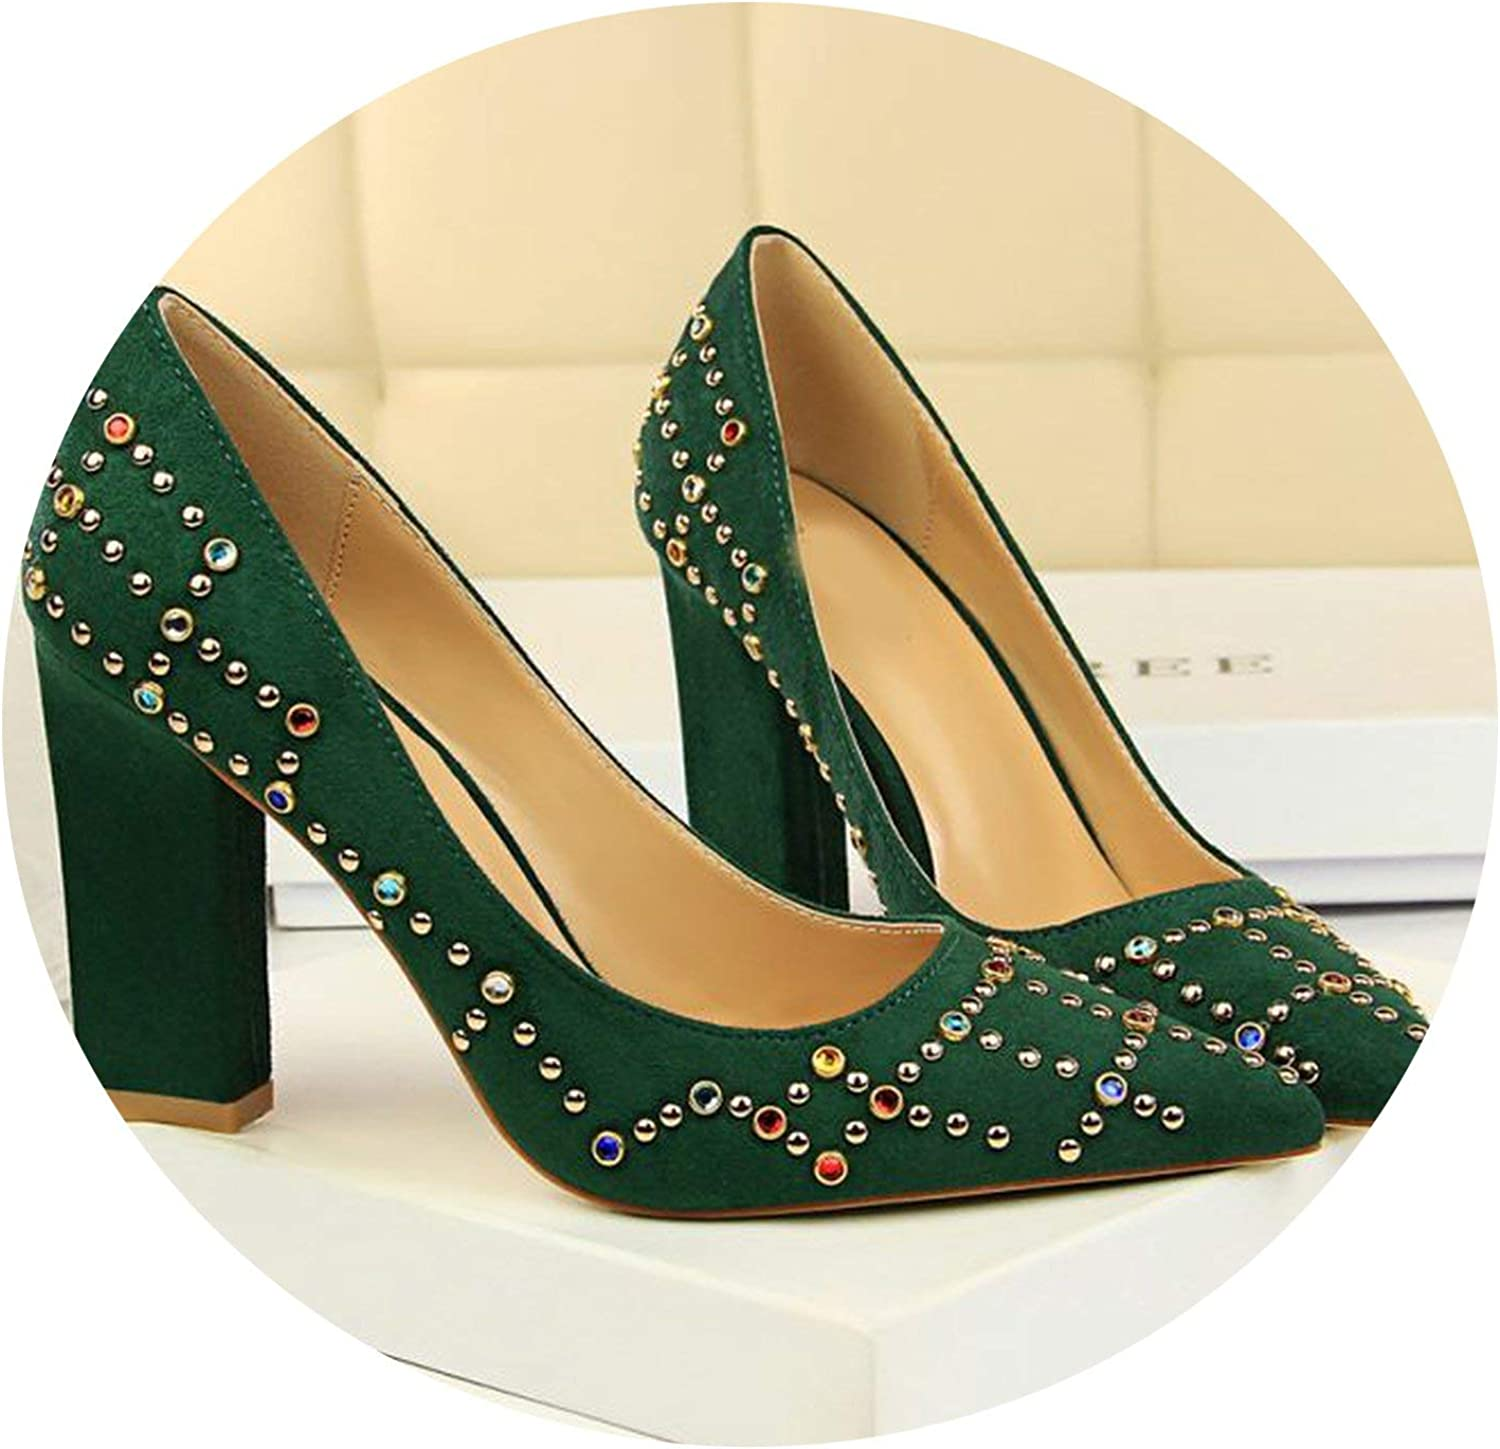 Mr Z Waroom Women Pumps Pointed Toe Shallow Thick Heels Flock color Crystal Women's High Heels shoes Ethnic Madam Pumps